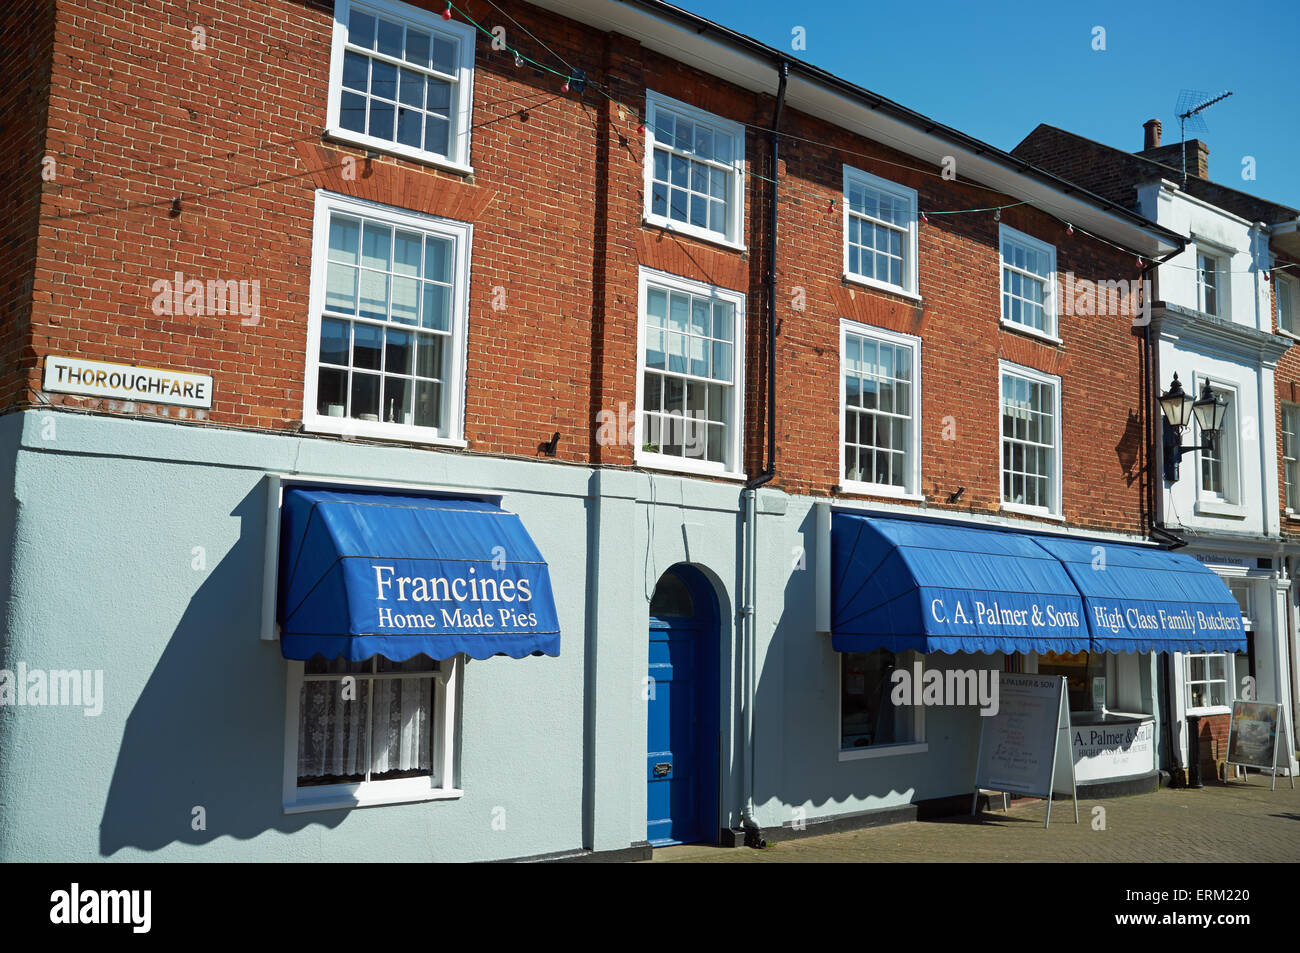 Francies home made pies and C A Palmer and sons family butchers, Halesworth, Suffolk, UK. - Stock Image